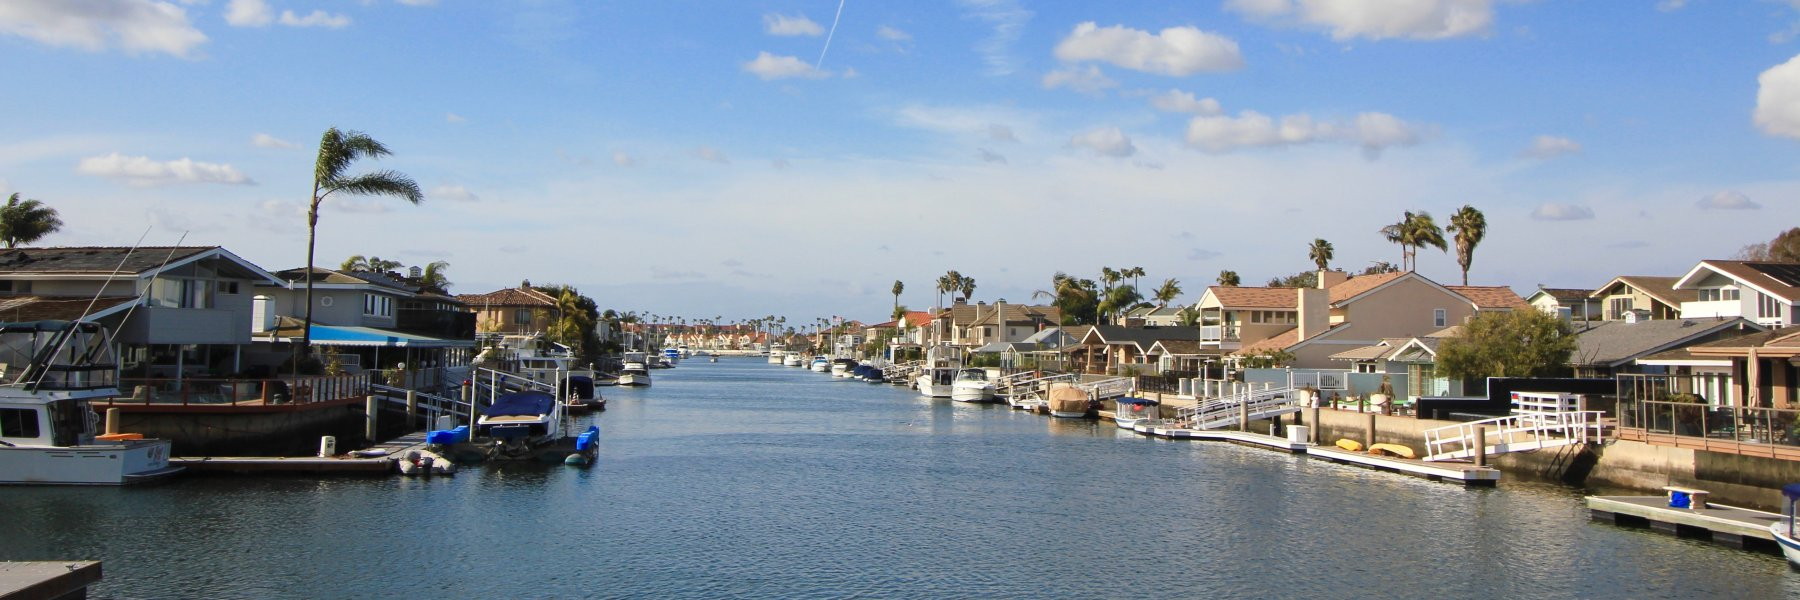 Huntington Harbour is a community of homes in Huntington Beach California